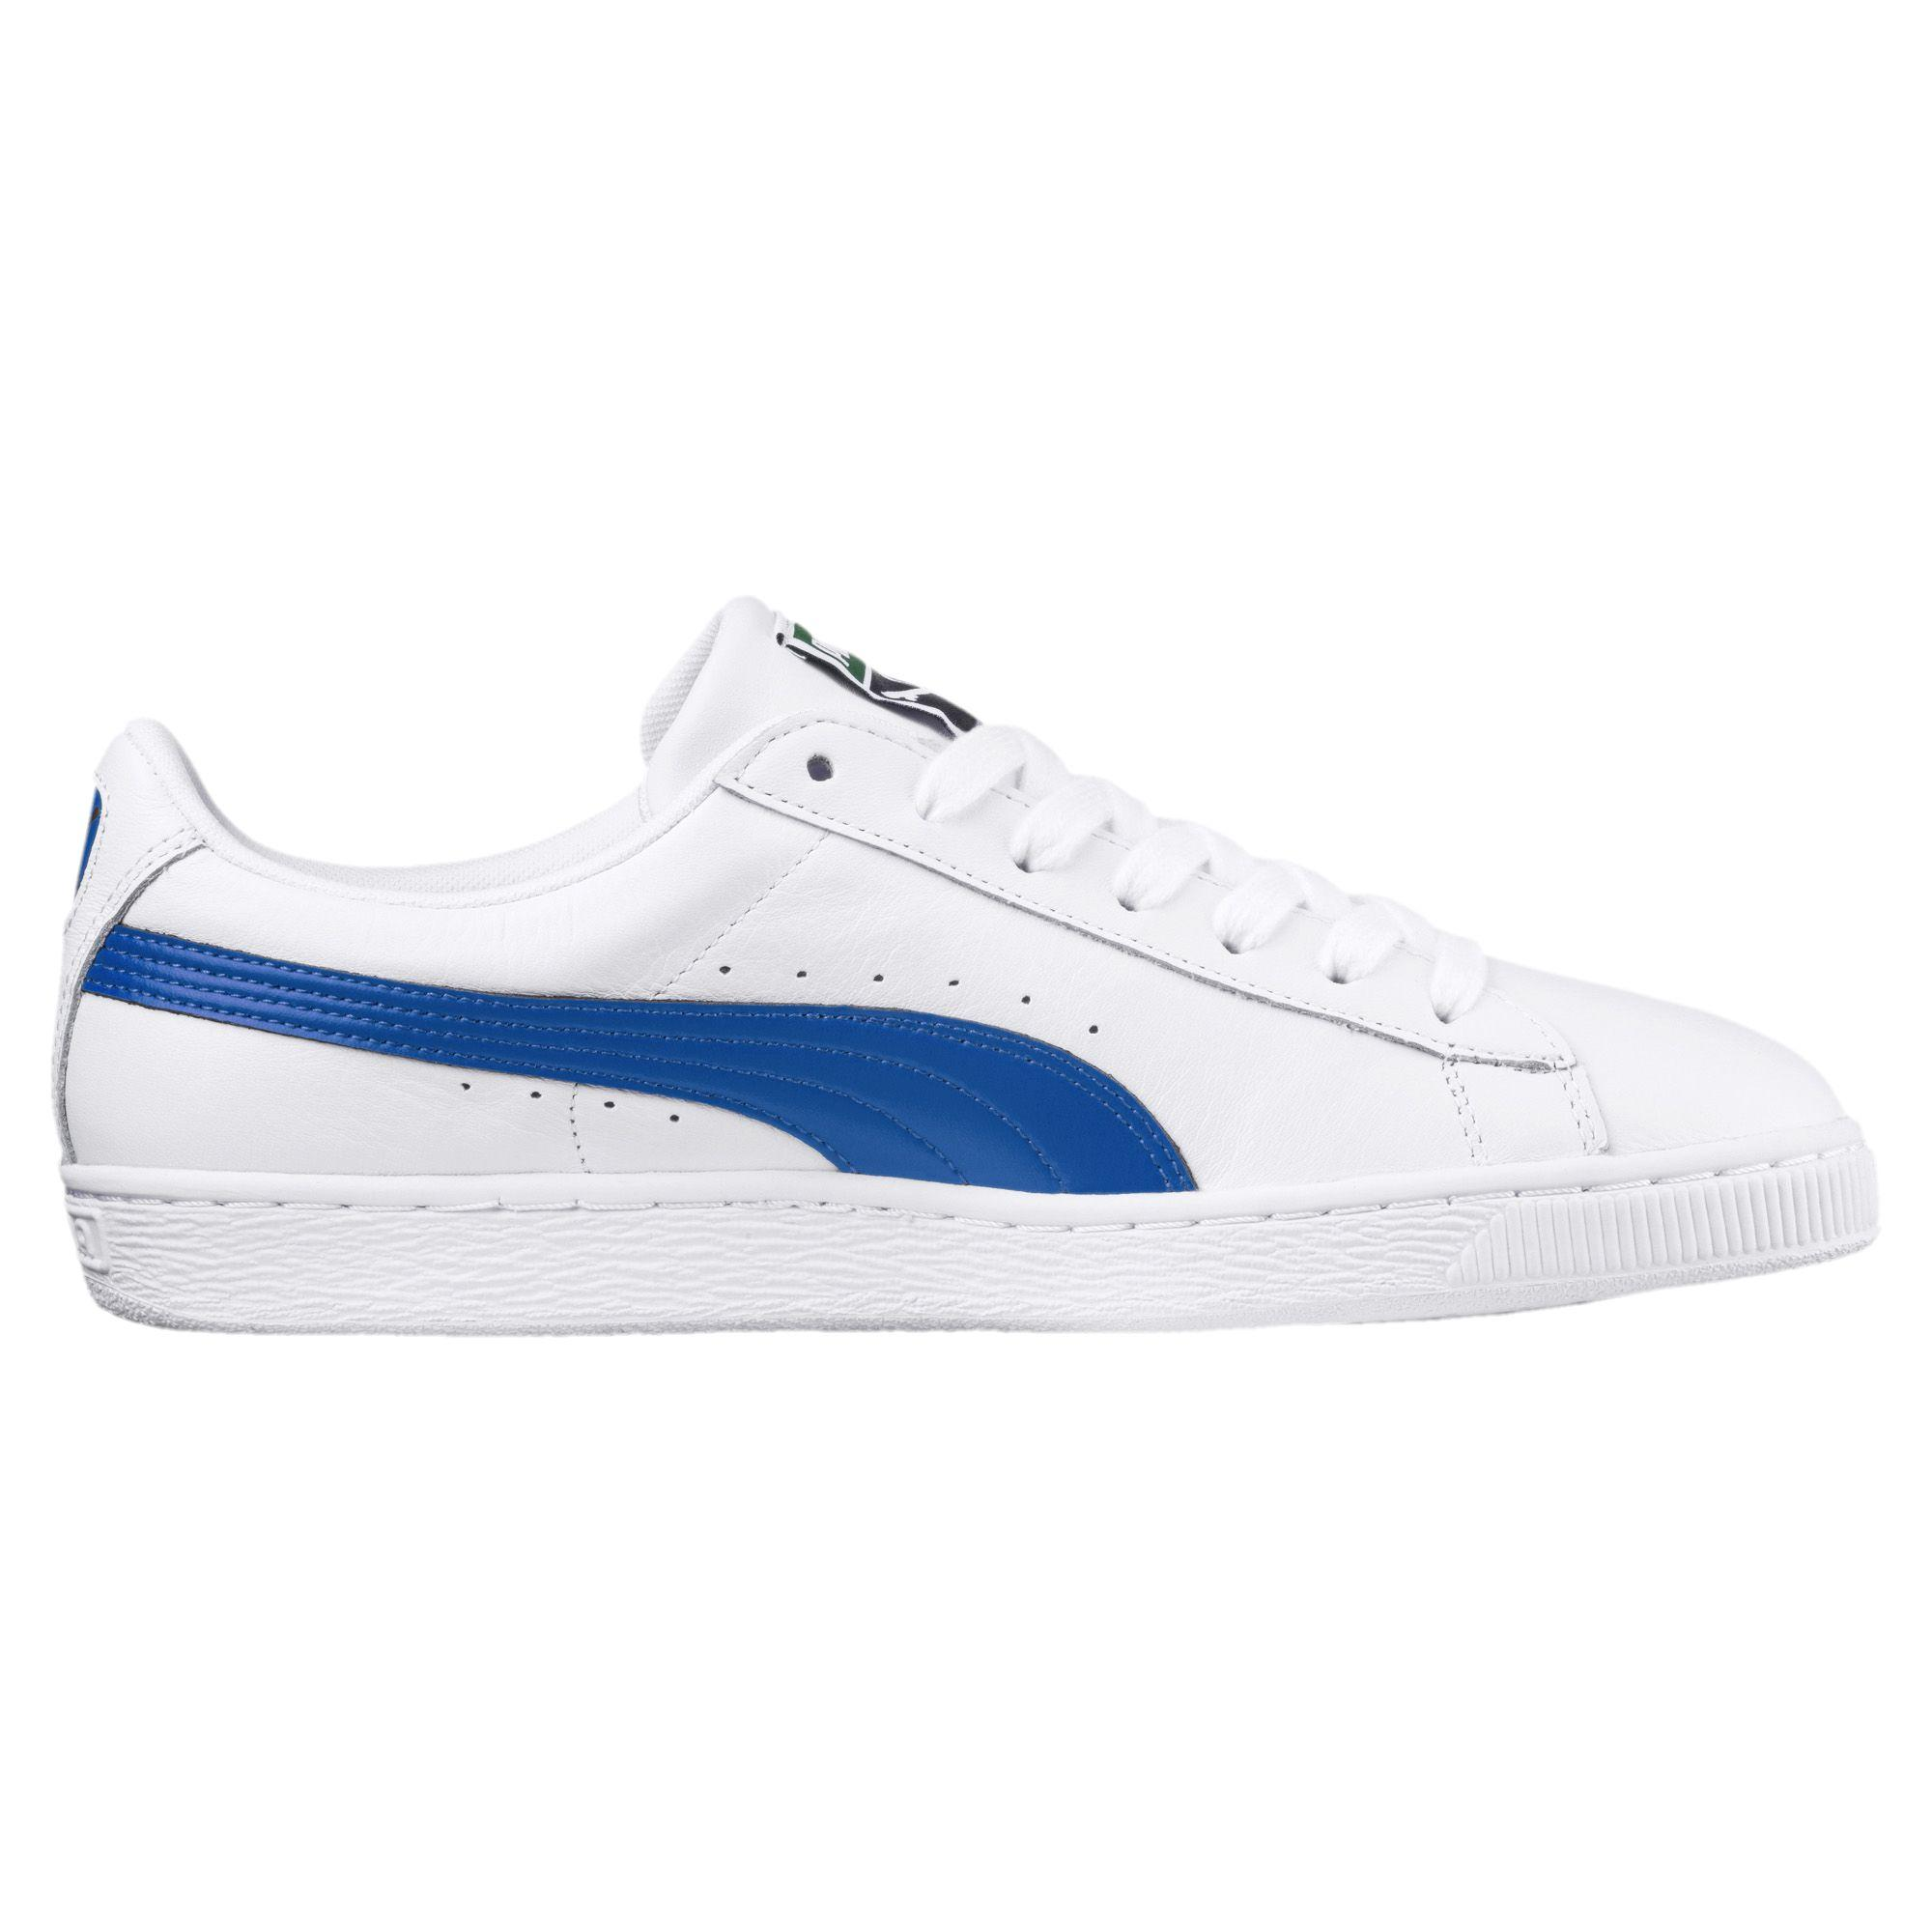 Puma Shoes Basket Classic Lfs